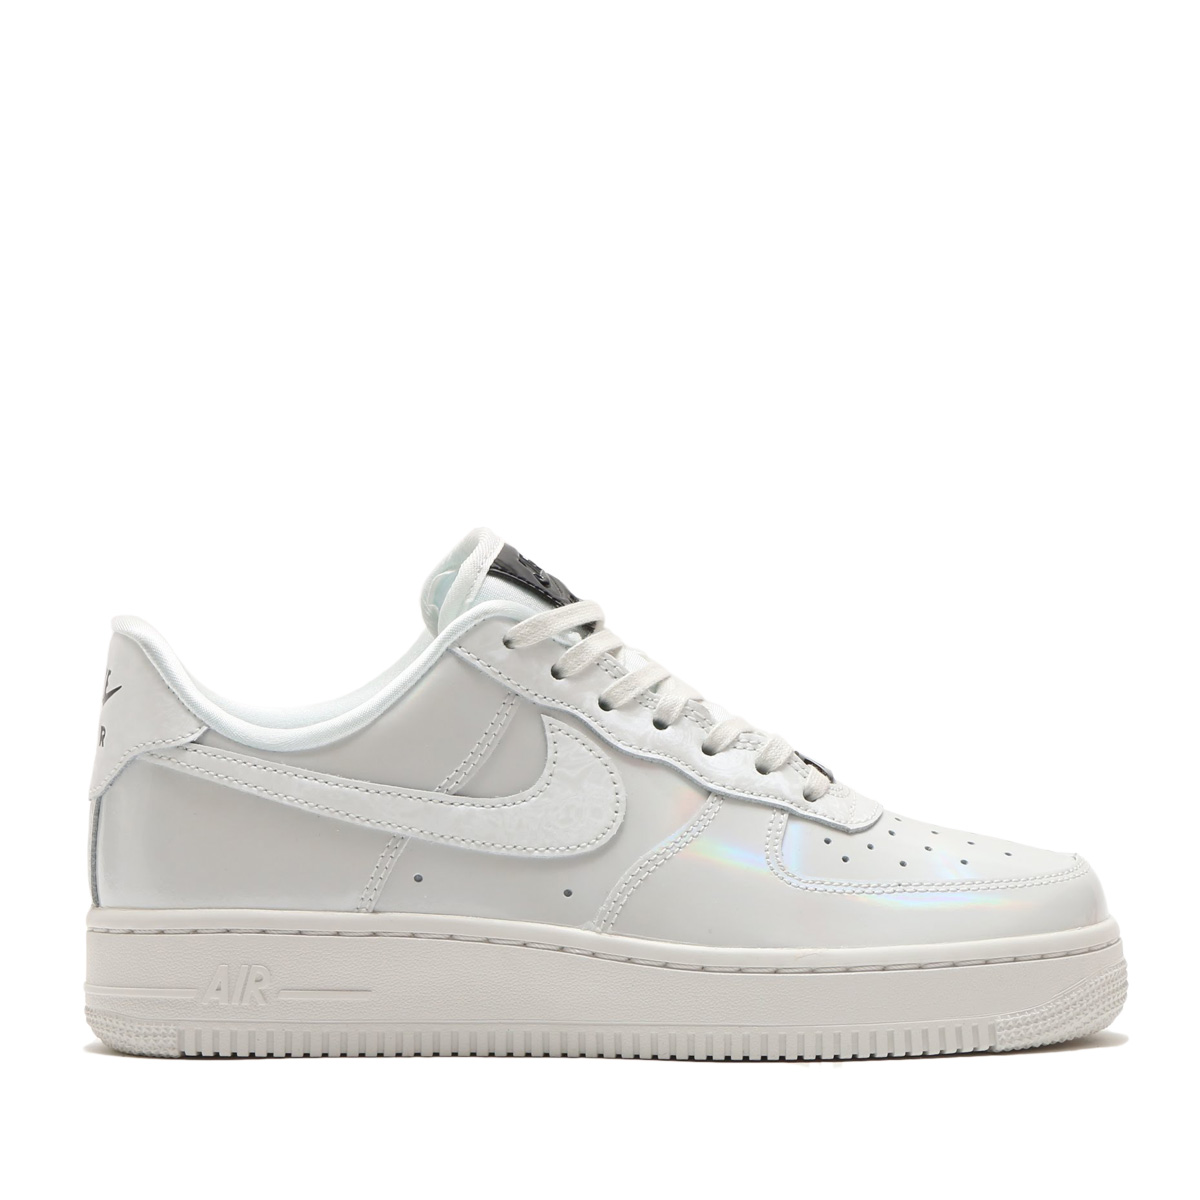 separation shoes 067ad 74b43 atmos pink: NIKE WMNS AIR FORCE 1 '07 LX (Nike women air force 1 07 ...